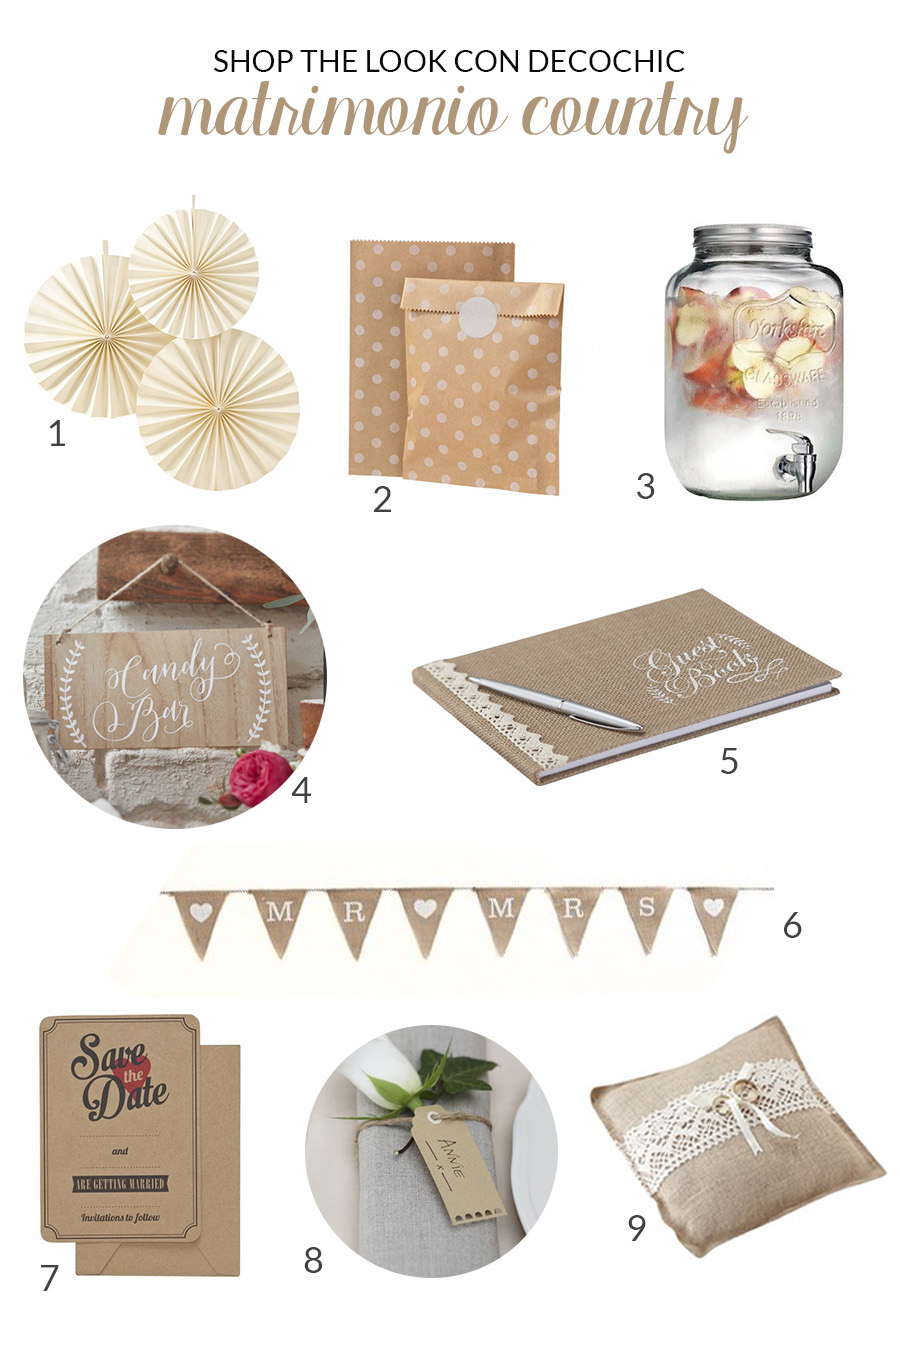 decorazioni matrimonio country chic - decochic